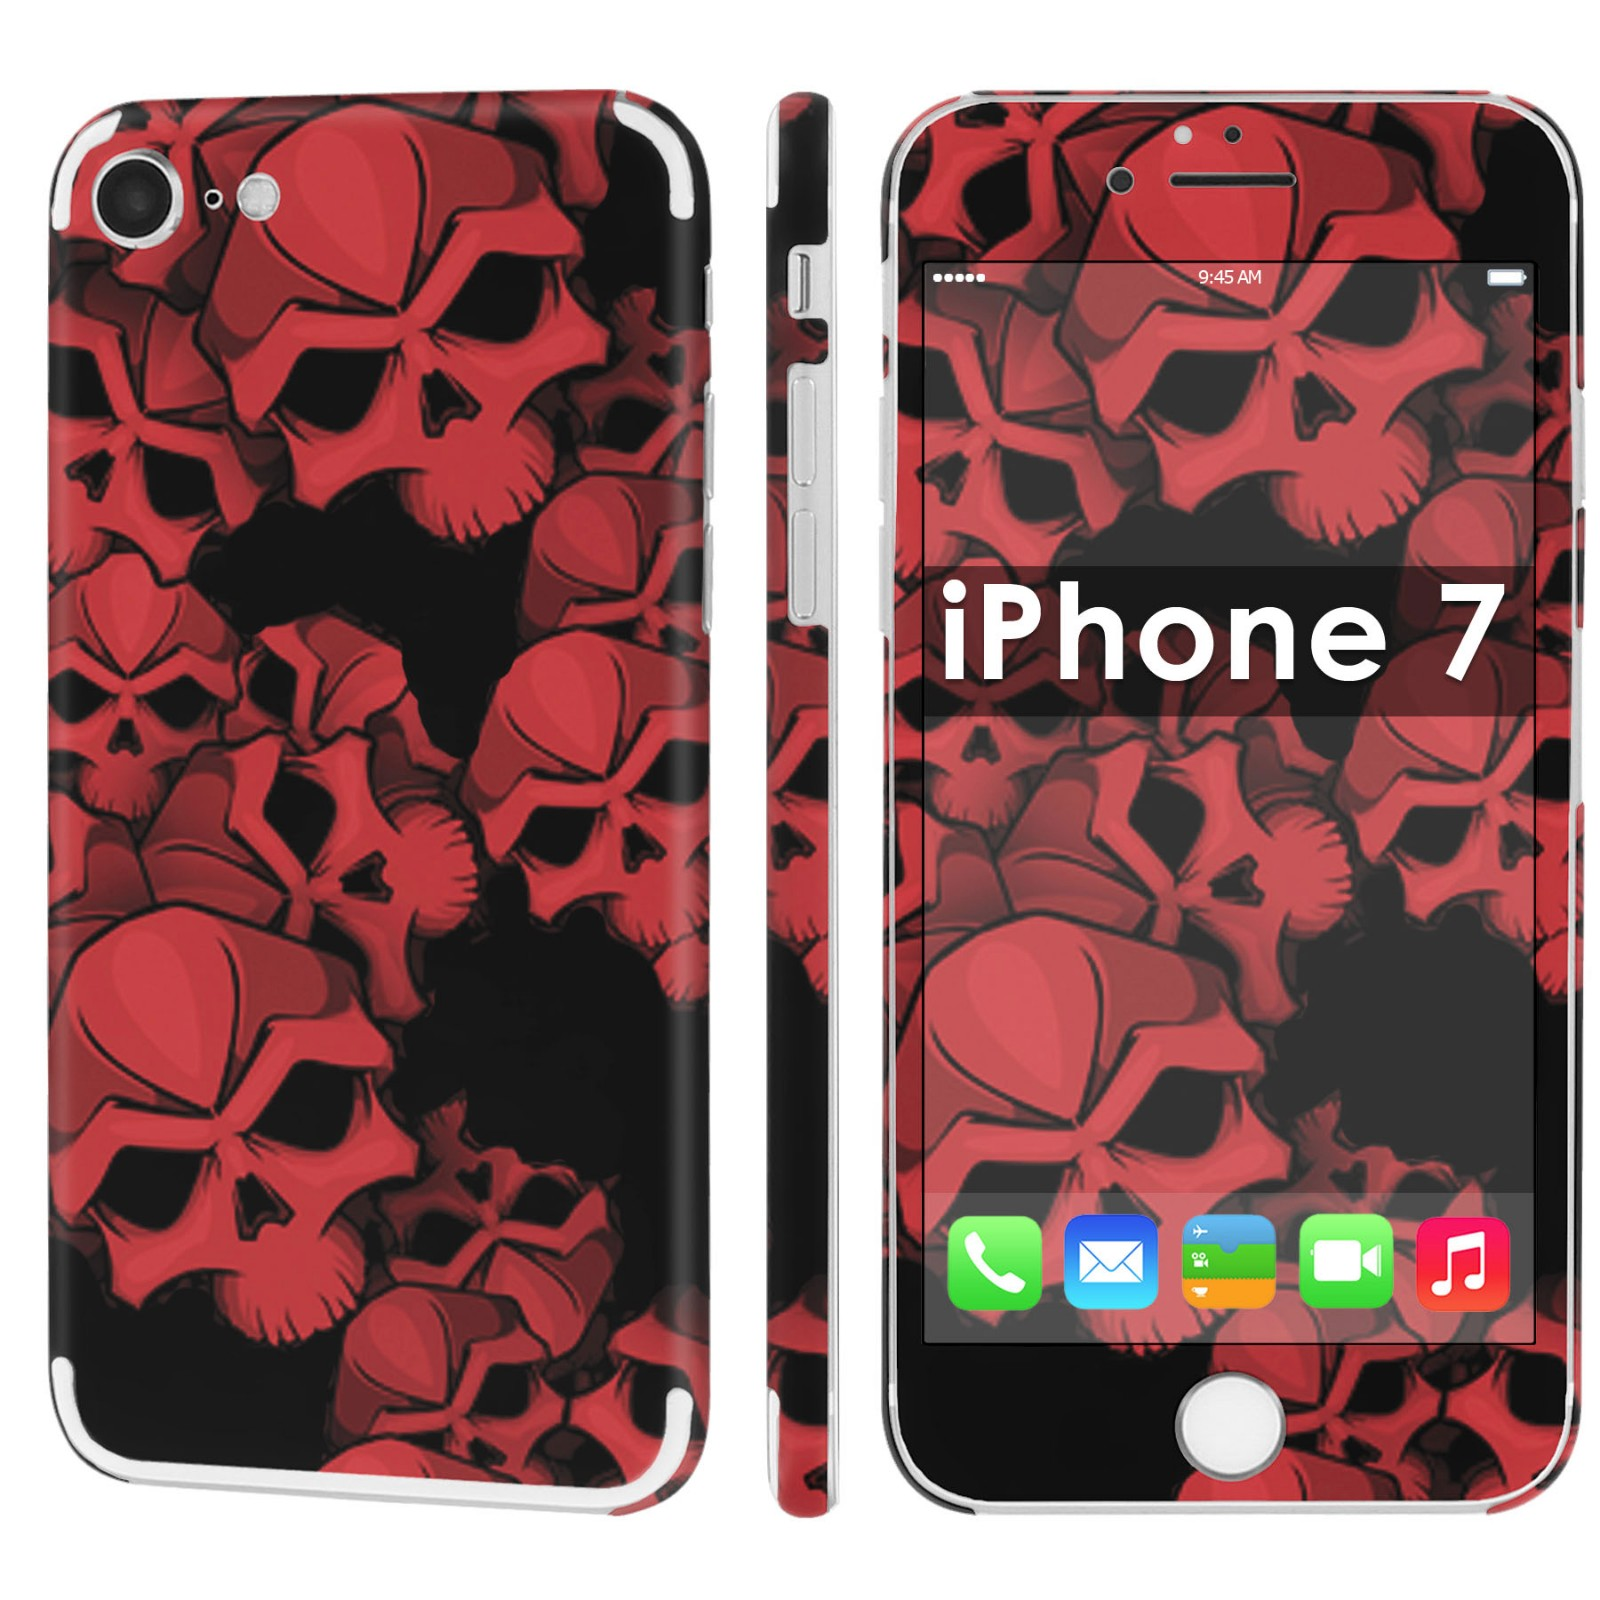 Iphone Wallpaper Enlarges: For IPhone 7/8 Decal Mania Skin Sticker [Matching